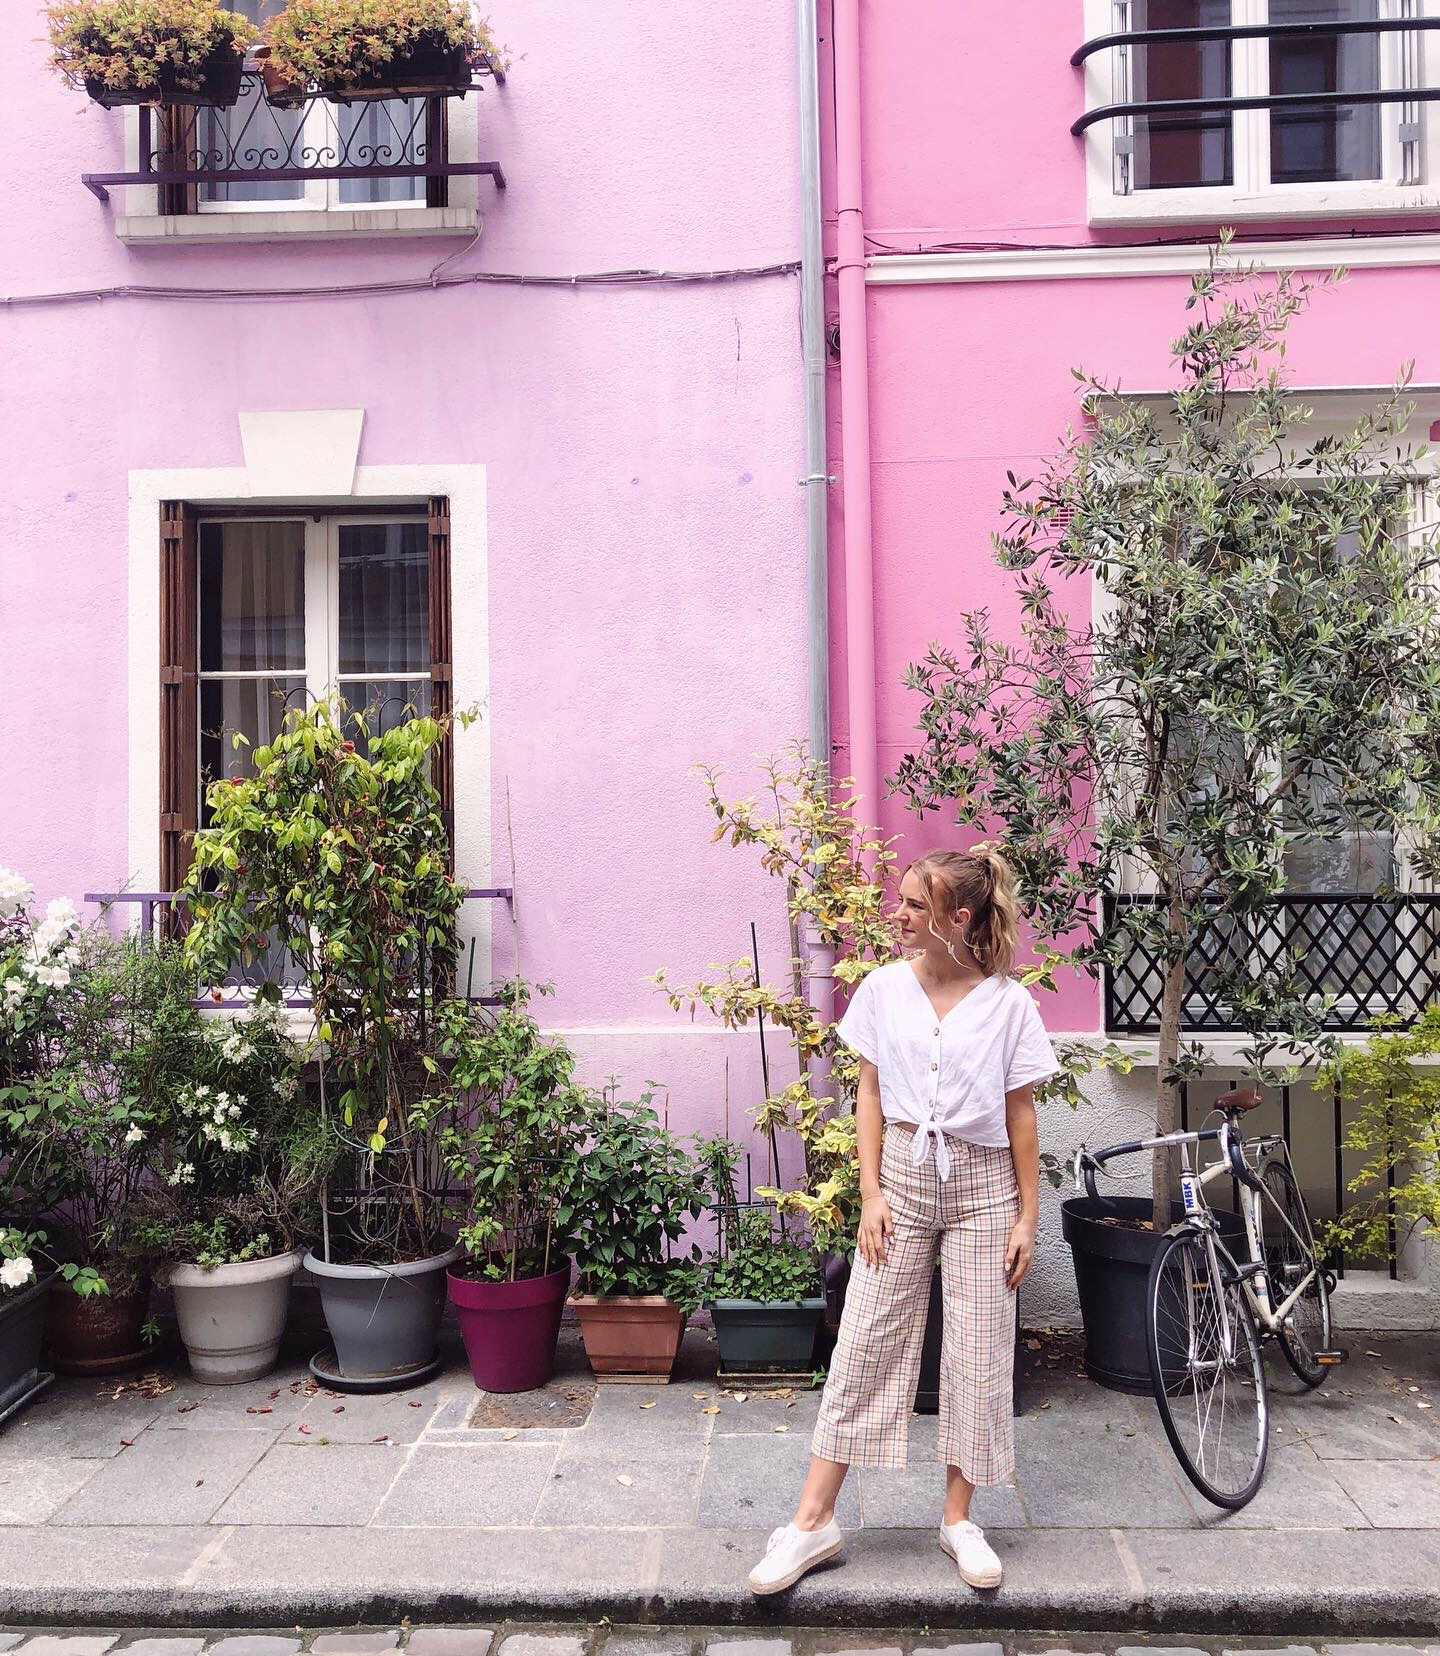 Friends In New York City :: Meet Emma - Associate Publicist by popular New York lifestyle blog, Live Laugh Linda: image of a woman standing in front of two pink buildings.